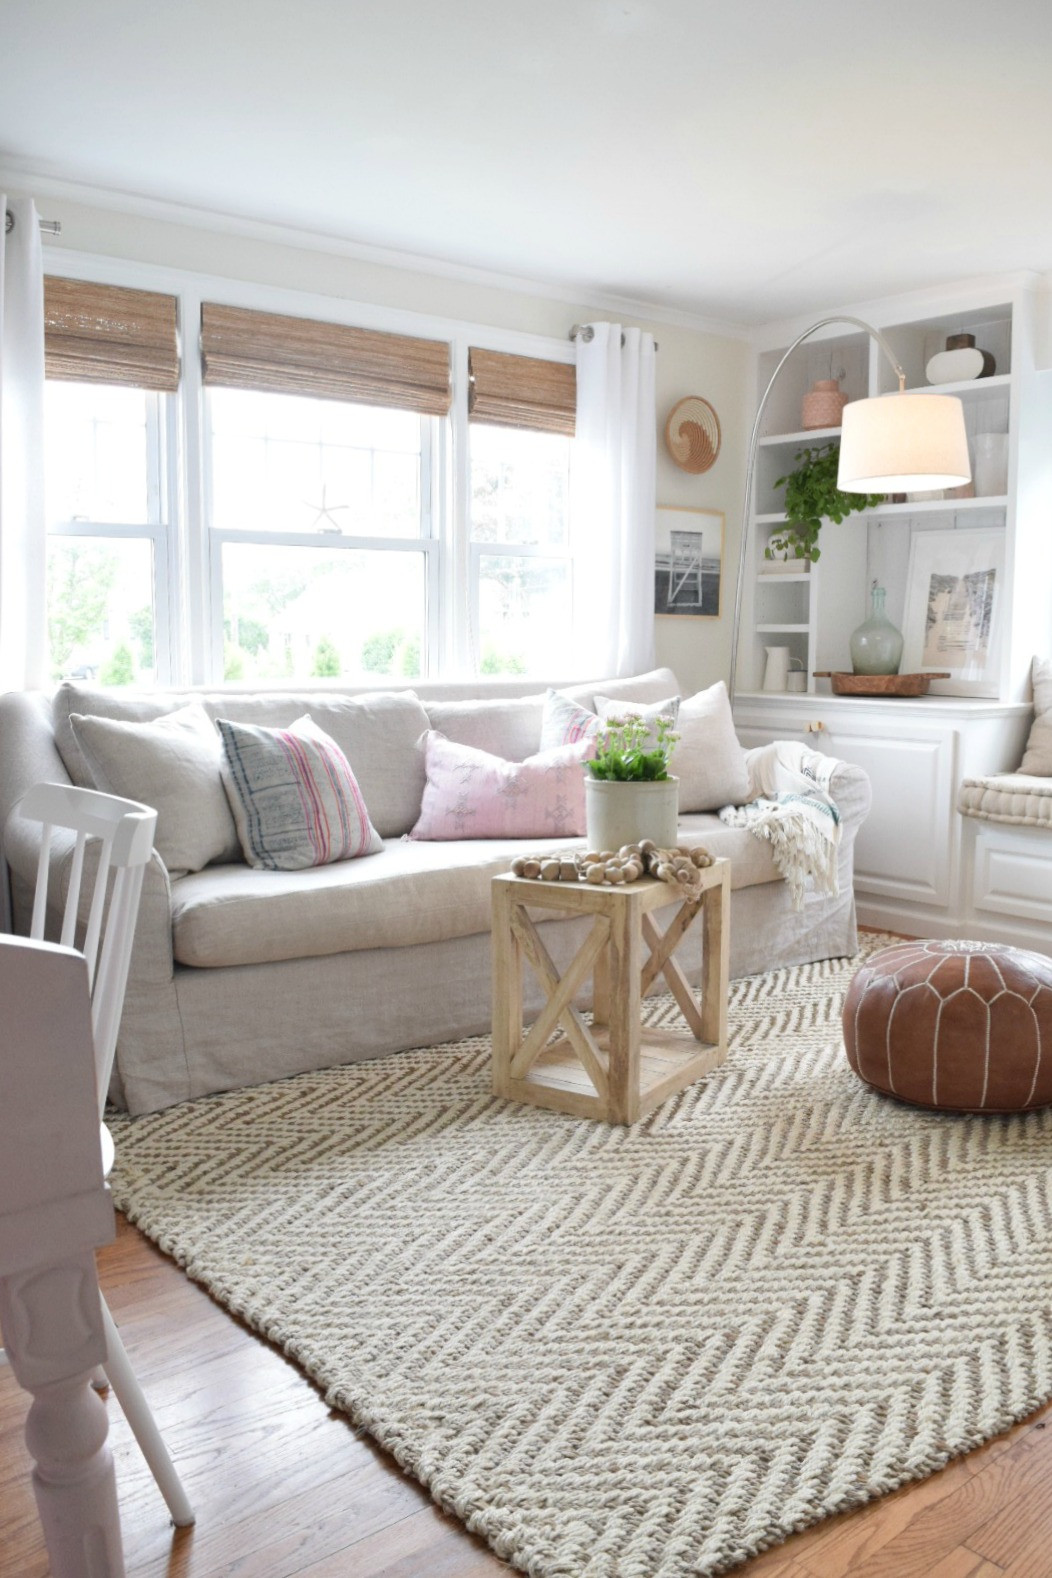 Rugs In Living Room Beautiful Jute Rug Review In Our Living Room Nesting with Grace